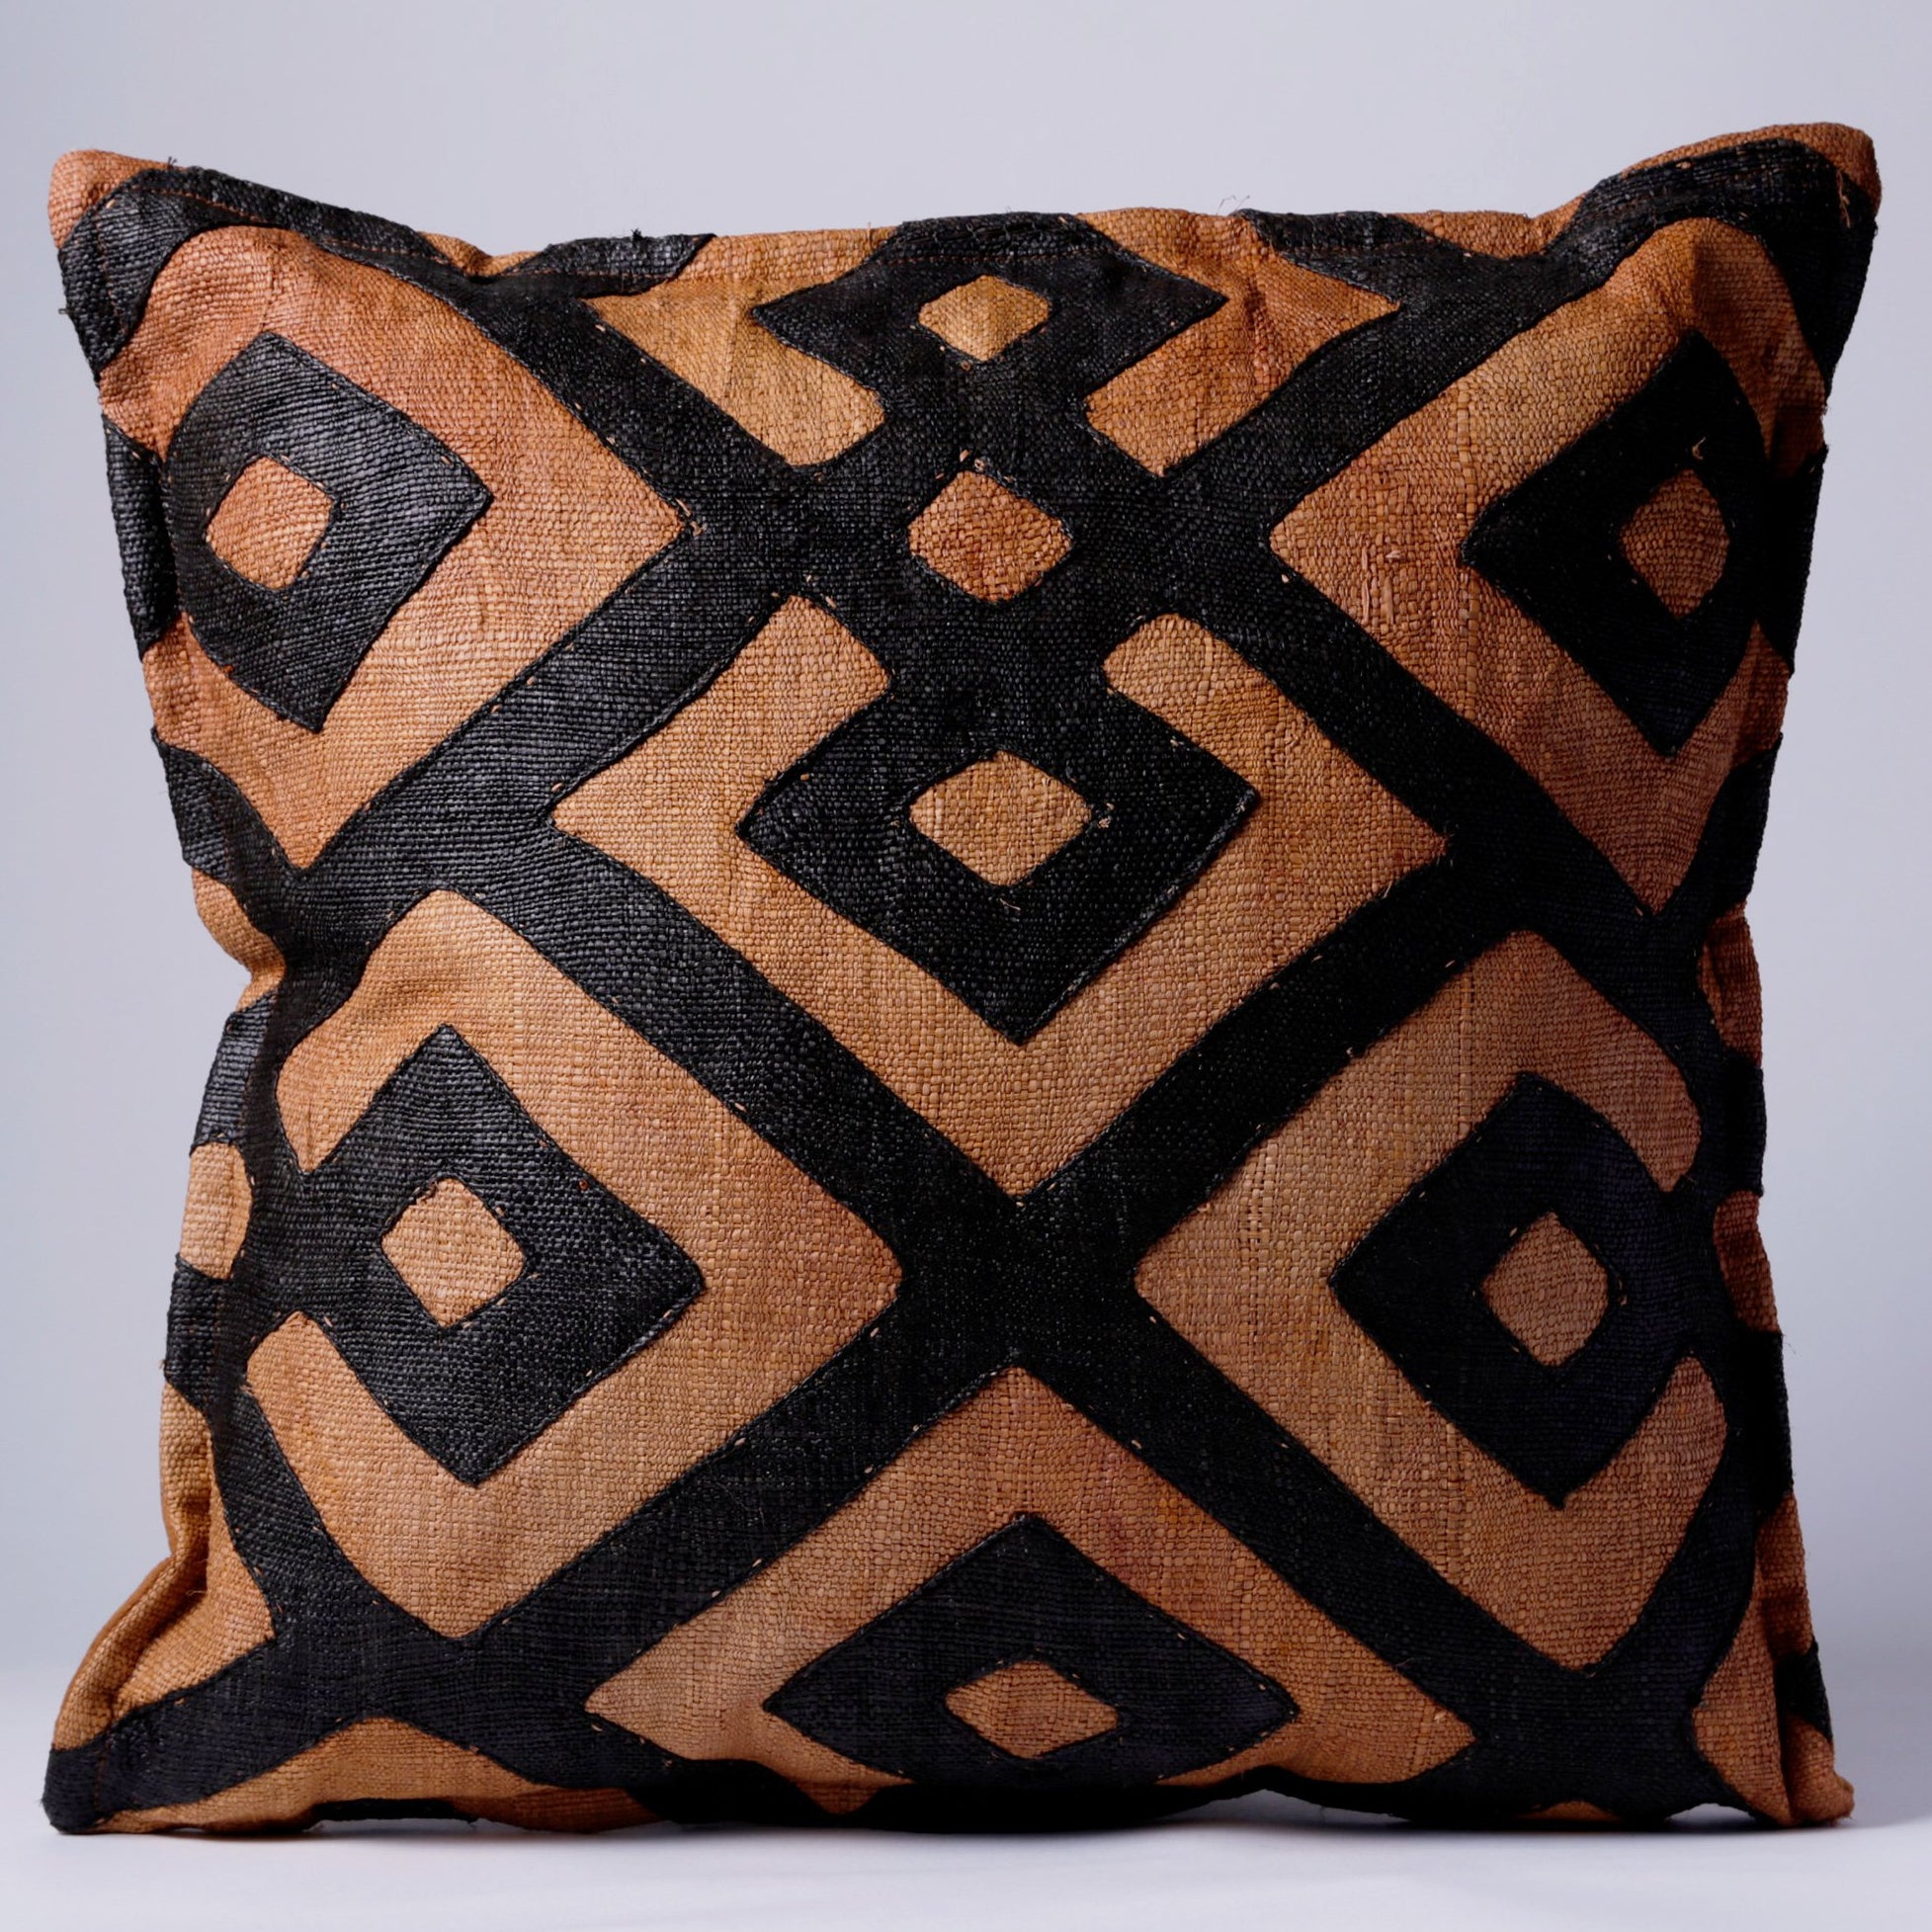 SAMBOUE PILLOW, DARK BROWN